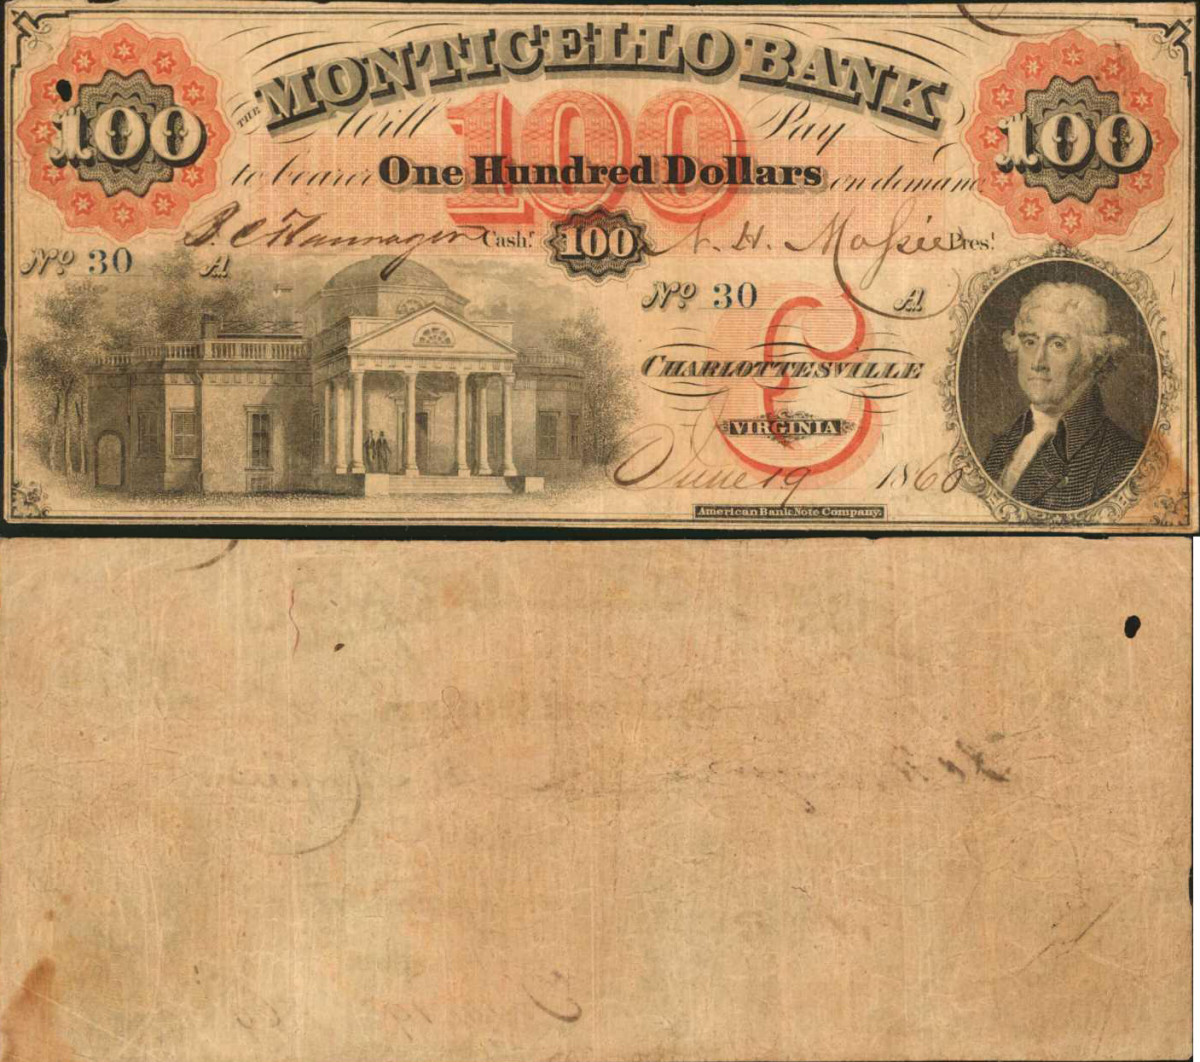 This 1860 $100 note from the Monticello Bank in Charlottesville, Virginia is graded PMG Very Fine 20. An image of the bank can be seen at left, and Jefferson at right. The note was estimated at $600-$800 and realized $2,280.